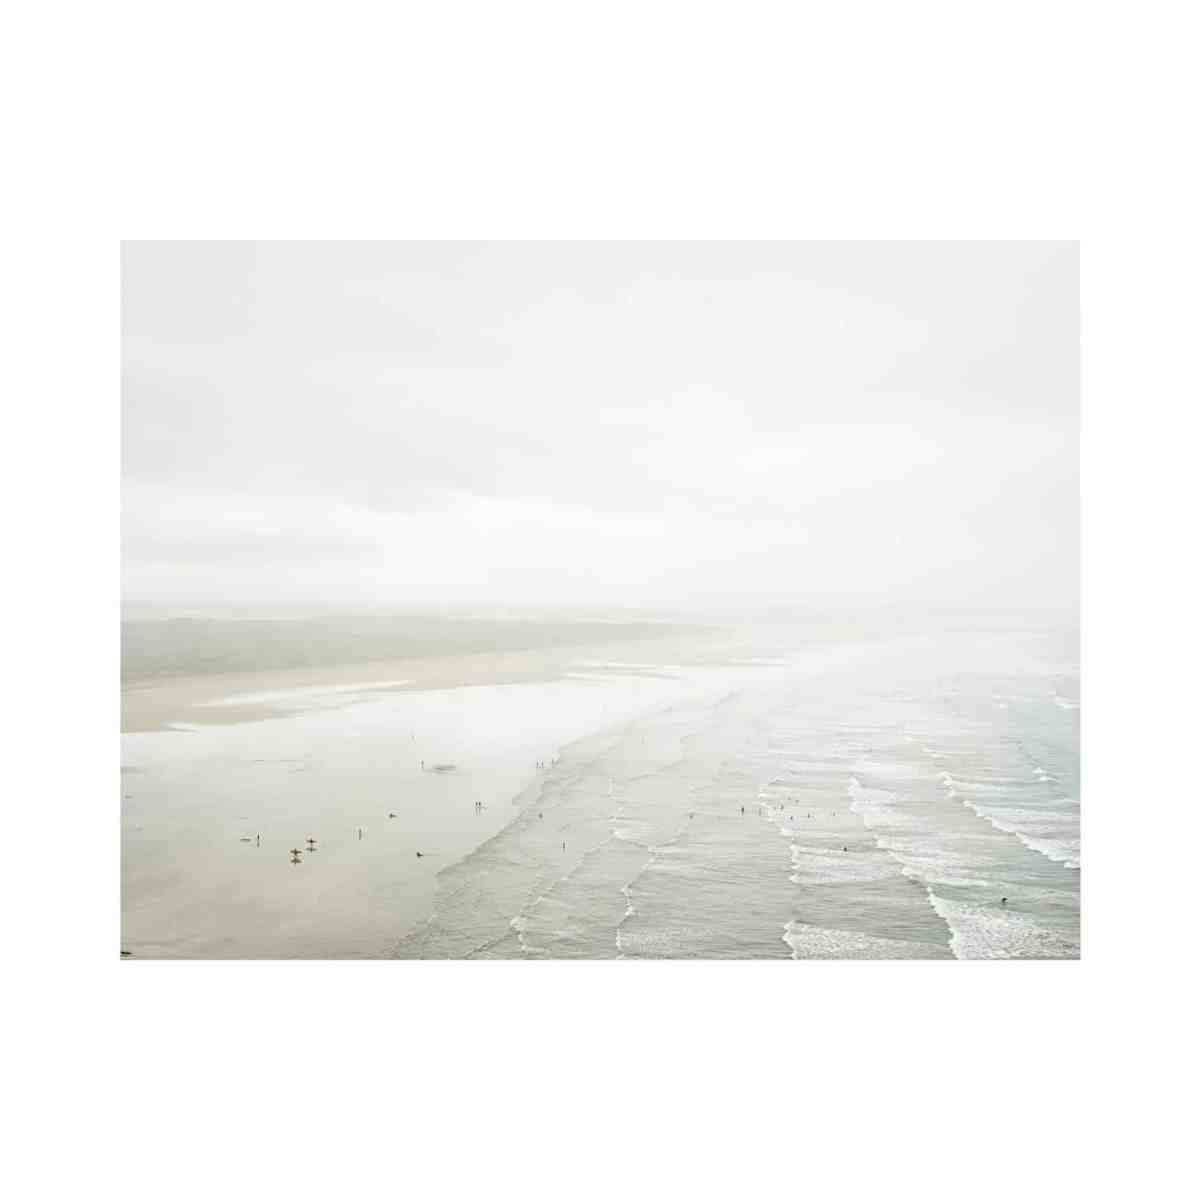 saunton-sands-a1-print-only-tom-shaw-another-country_da90c197-b0b5-4860-8e09-d0b8af8b6f8c.jpg